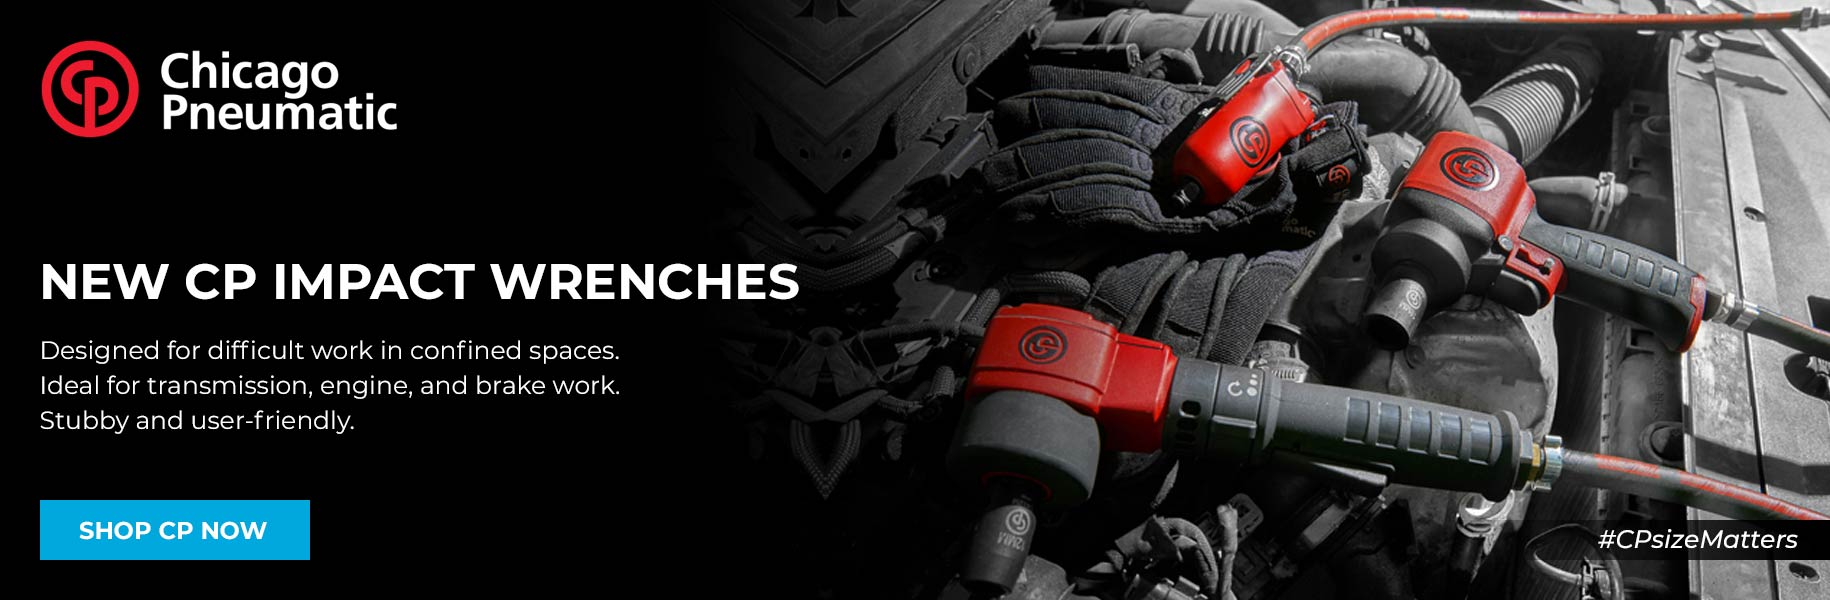 Chicago Pneumatic new impact wrenches: shop now